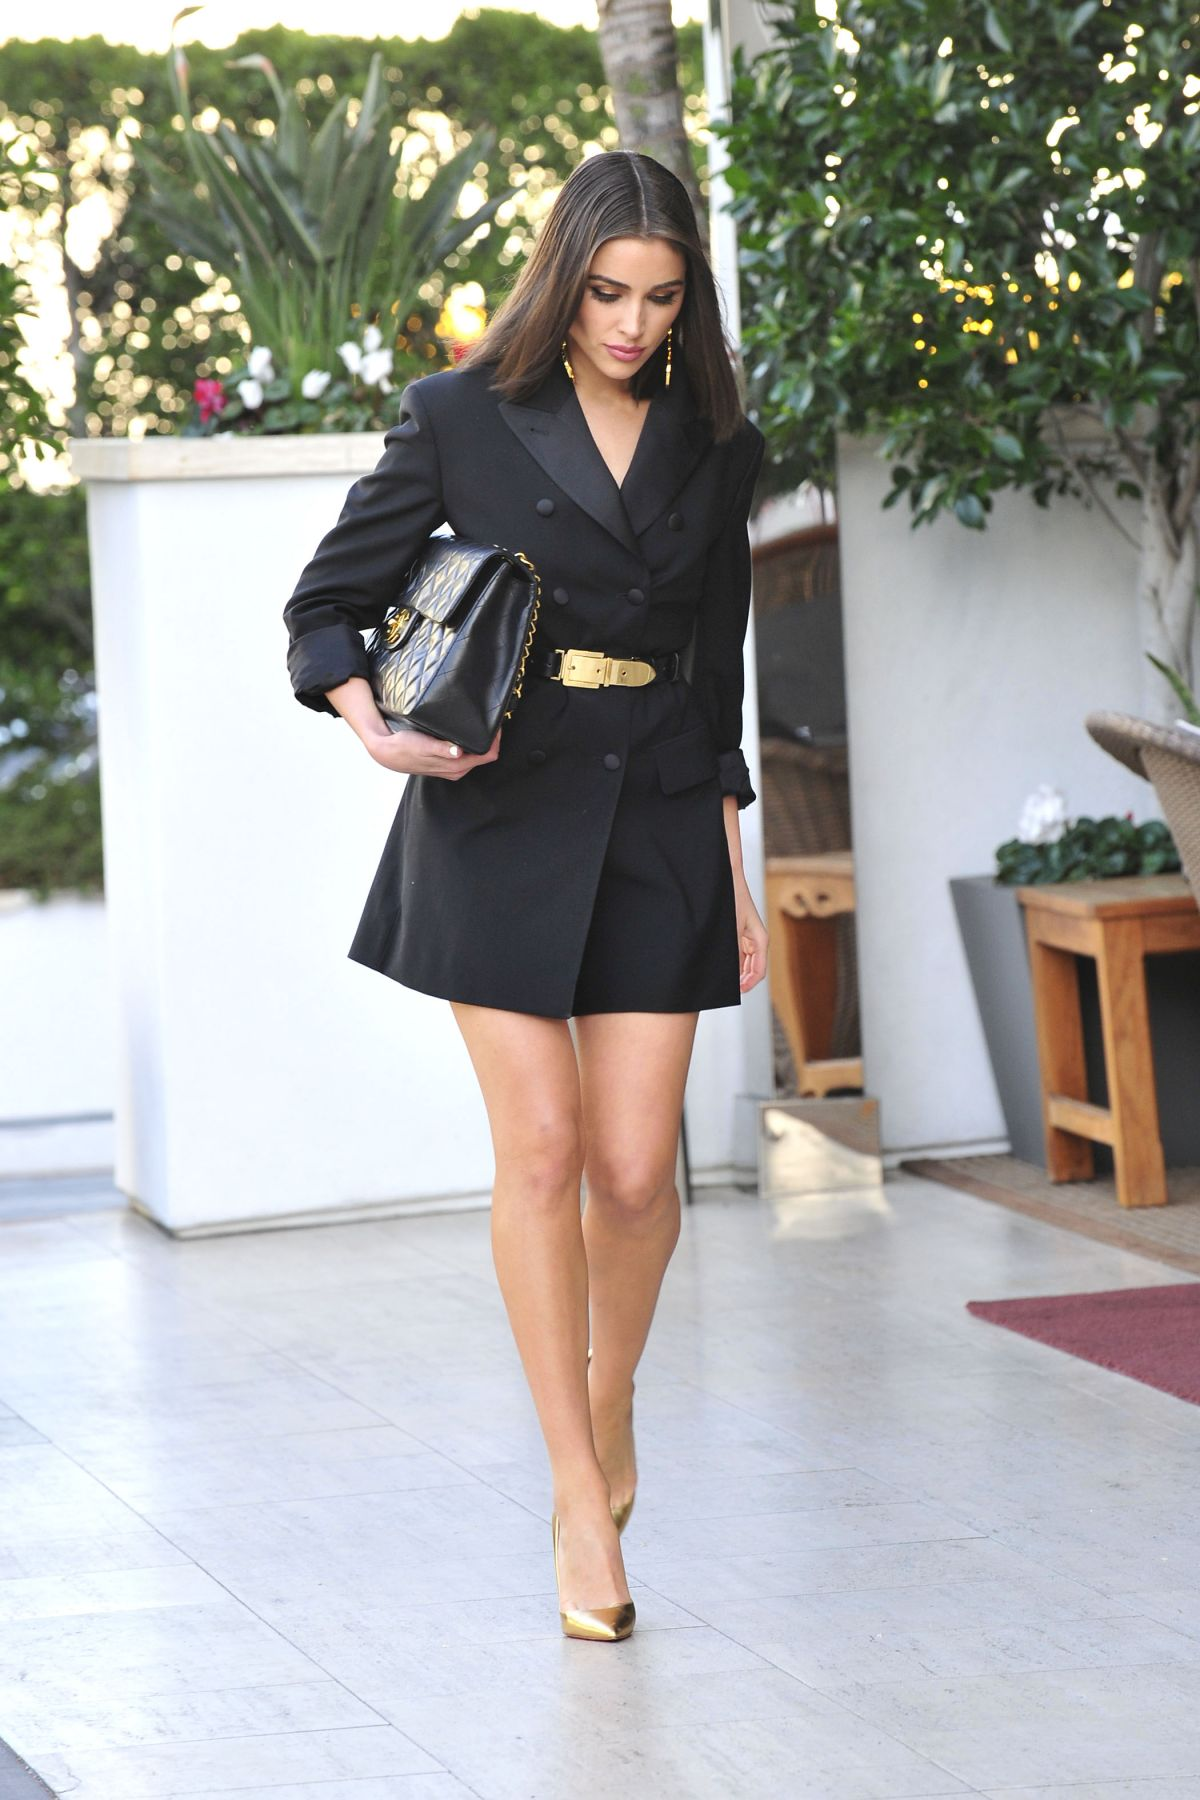 Olivia Culpo steps out in a black and gold ensemble in Los Angeles